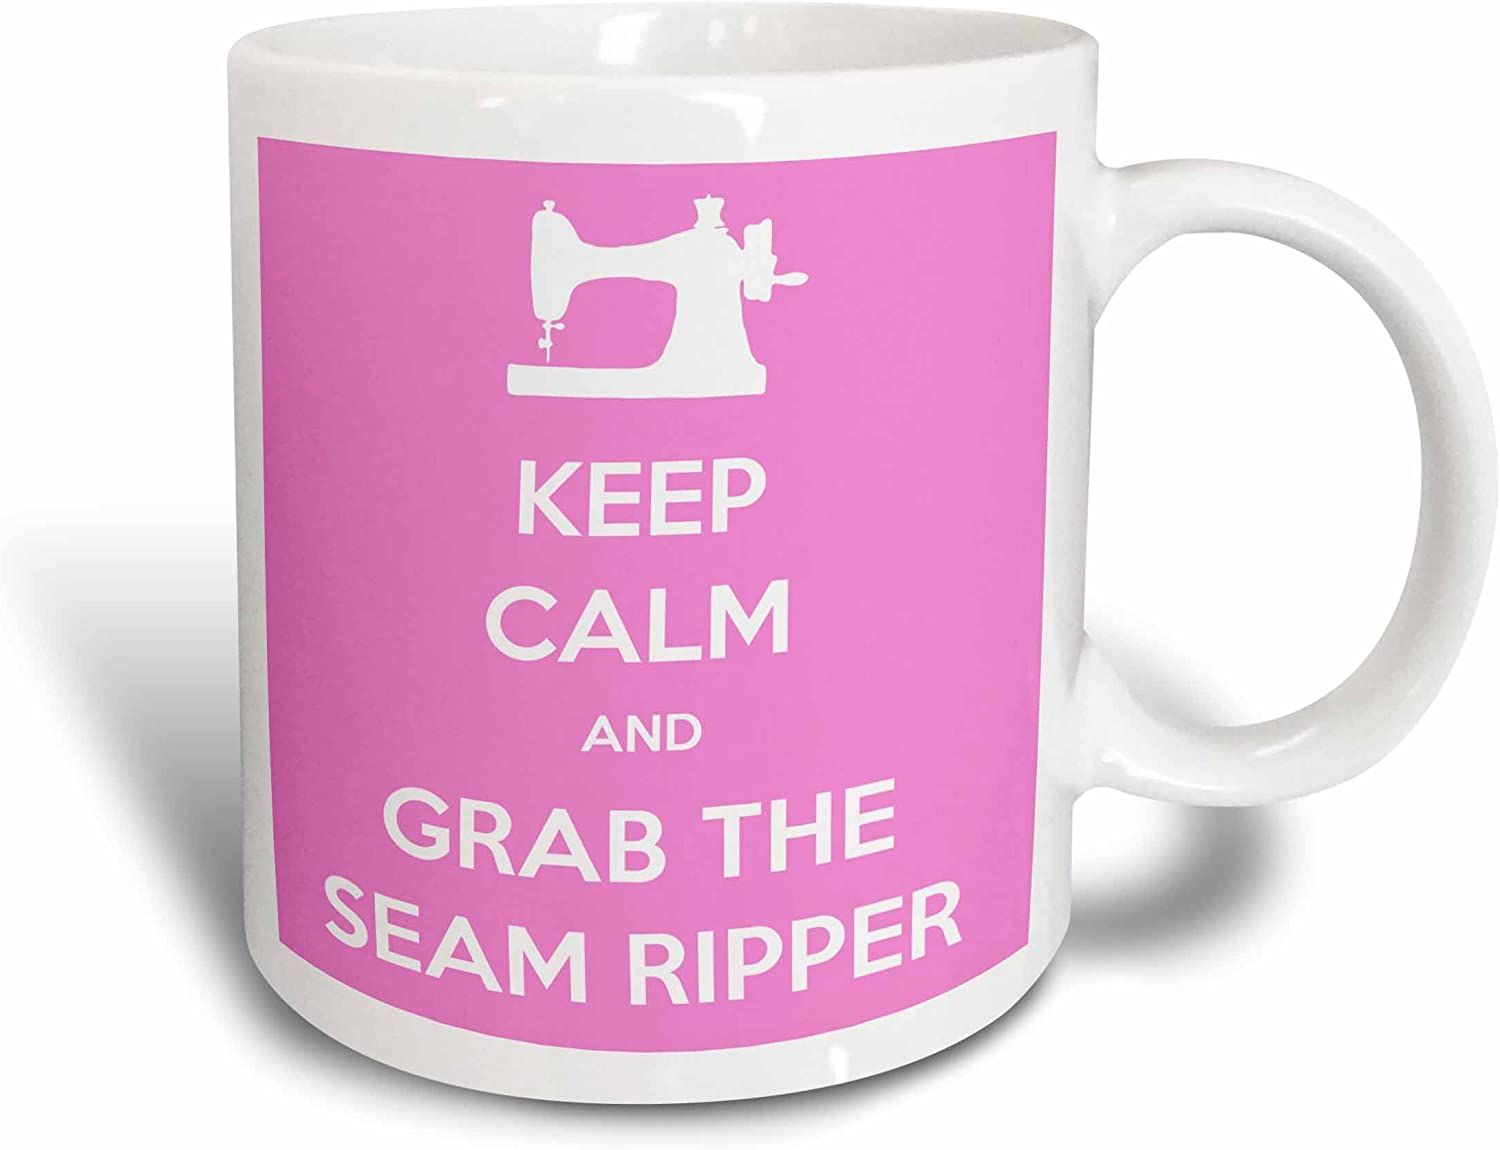 3dRose mug_172002_2 Keep Calm and Grab The Seam Ripper, Pink and White Ceramic Mug, 15-Ounce